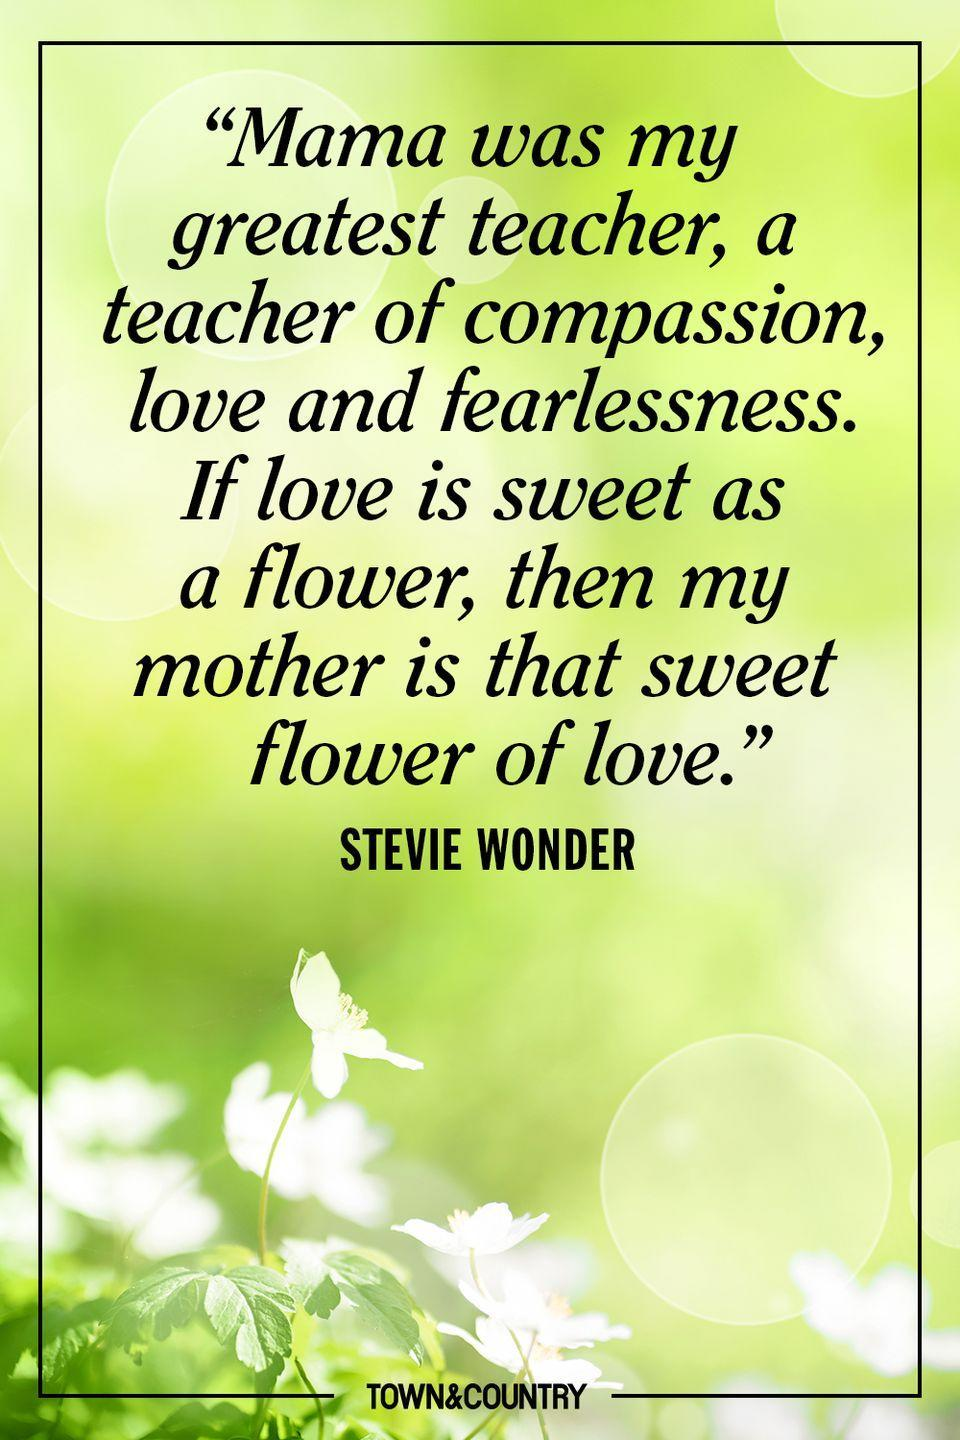 """<p>""""Mama was my greatest teacher, a teacher of compassion, love and fearlessness. If love is sweet as a flower, then my mother is that sweet flower of love."""" </p><p>- Stevie Wonder</p>"""